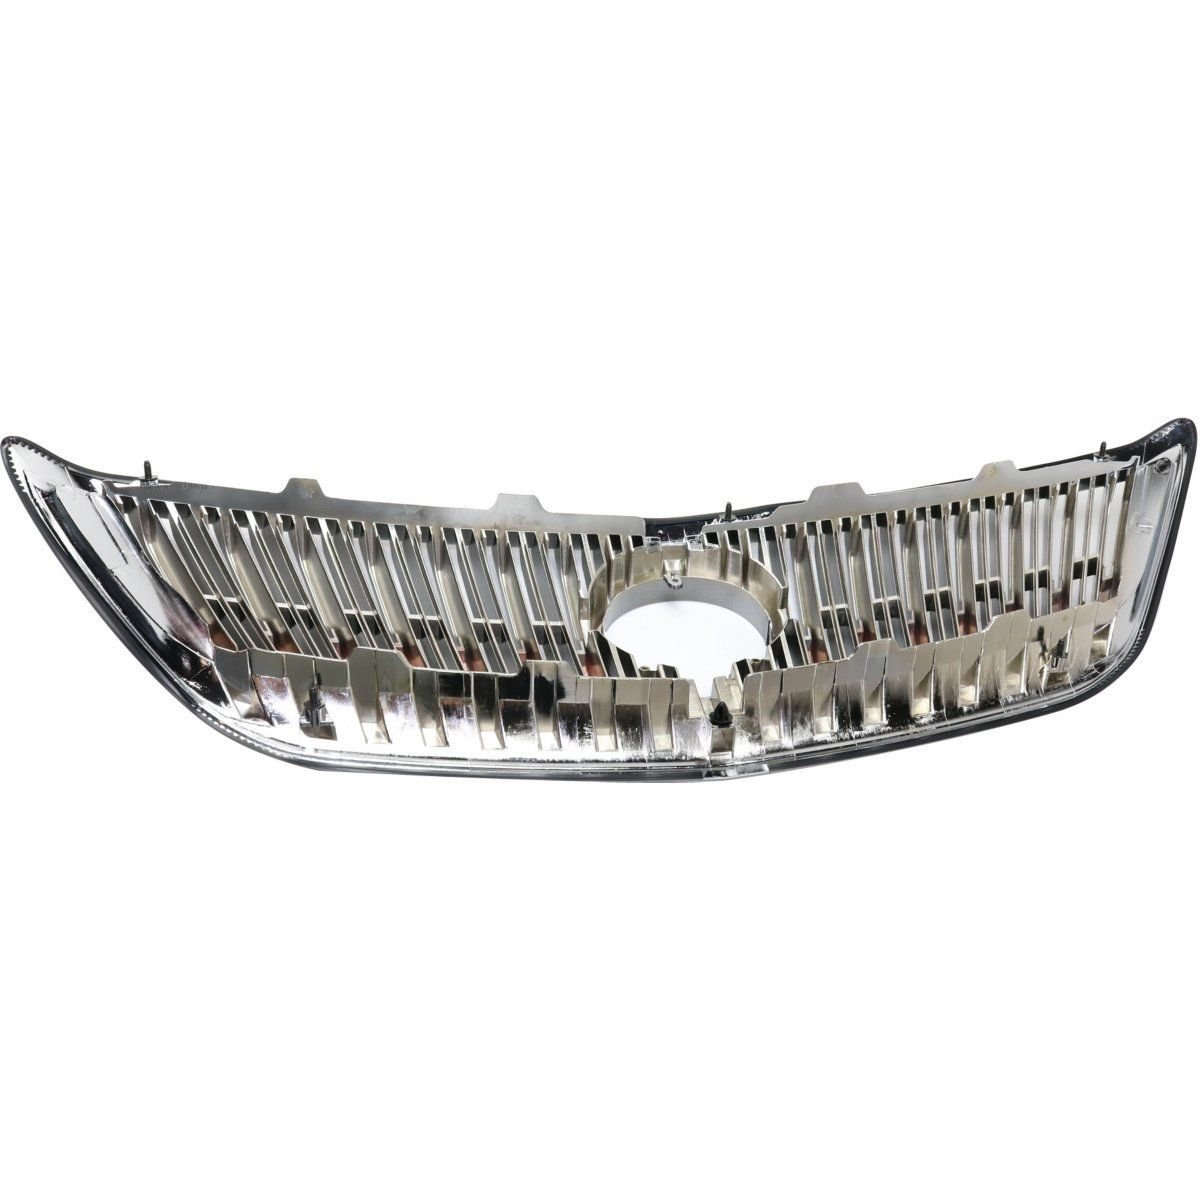 New Front Grille For 2004-2006 Lexus RX330 And 2007 Lexus RX350 Chrome Shell//Painted-Gray Insert Japan Built LX1200113